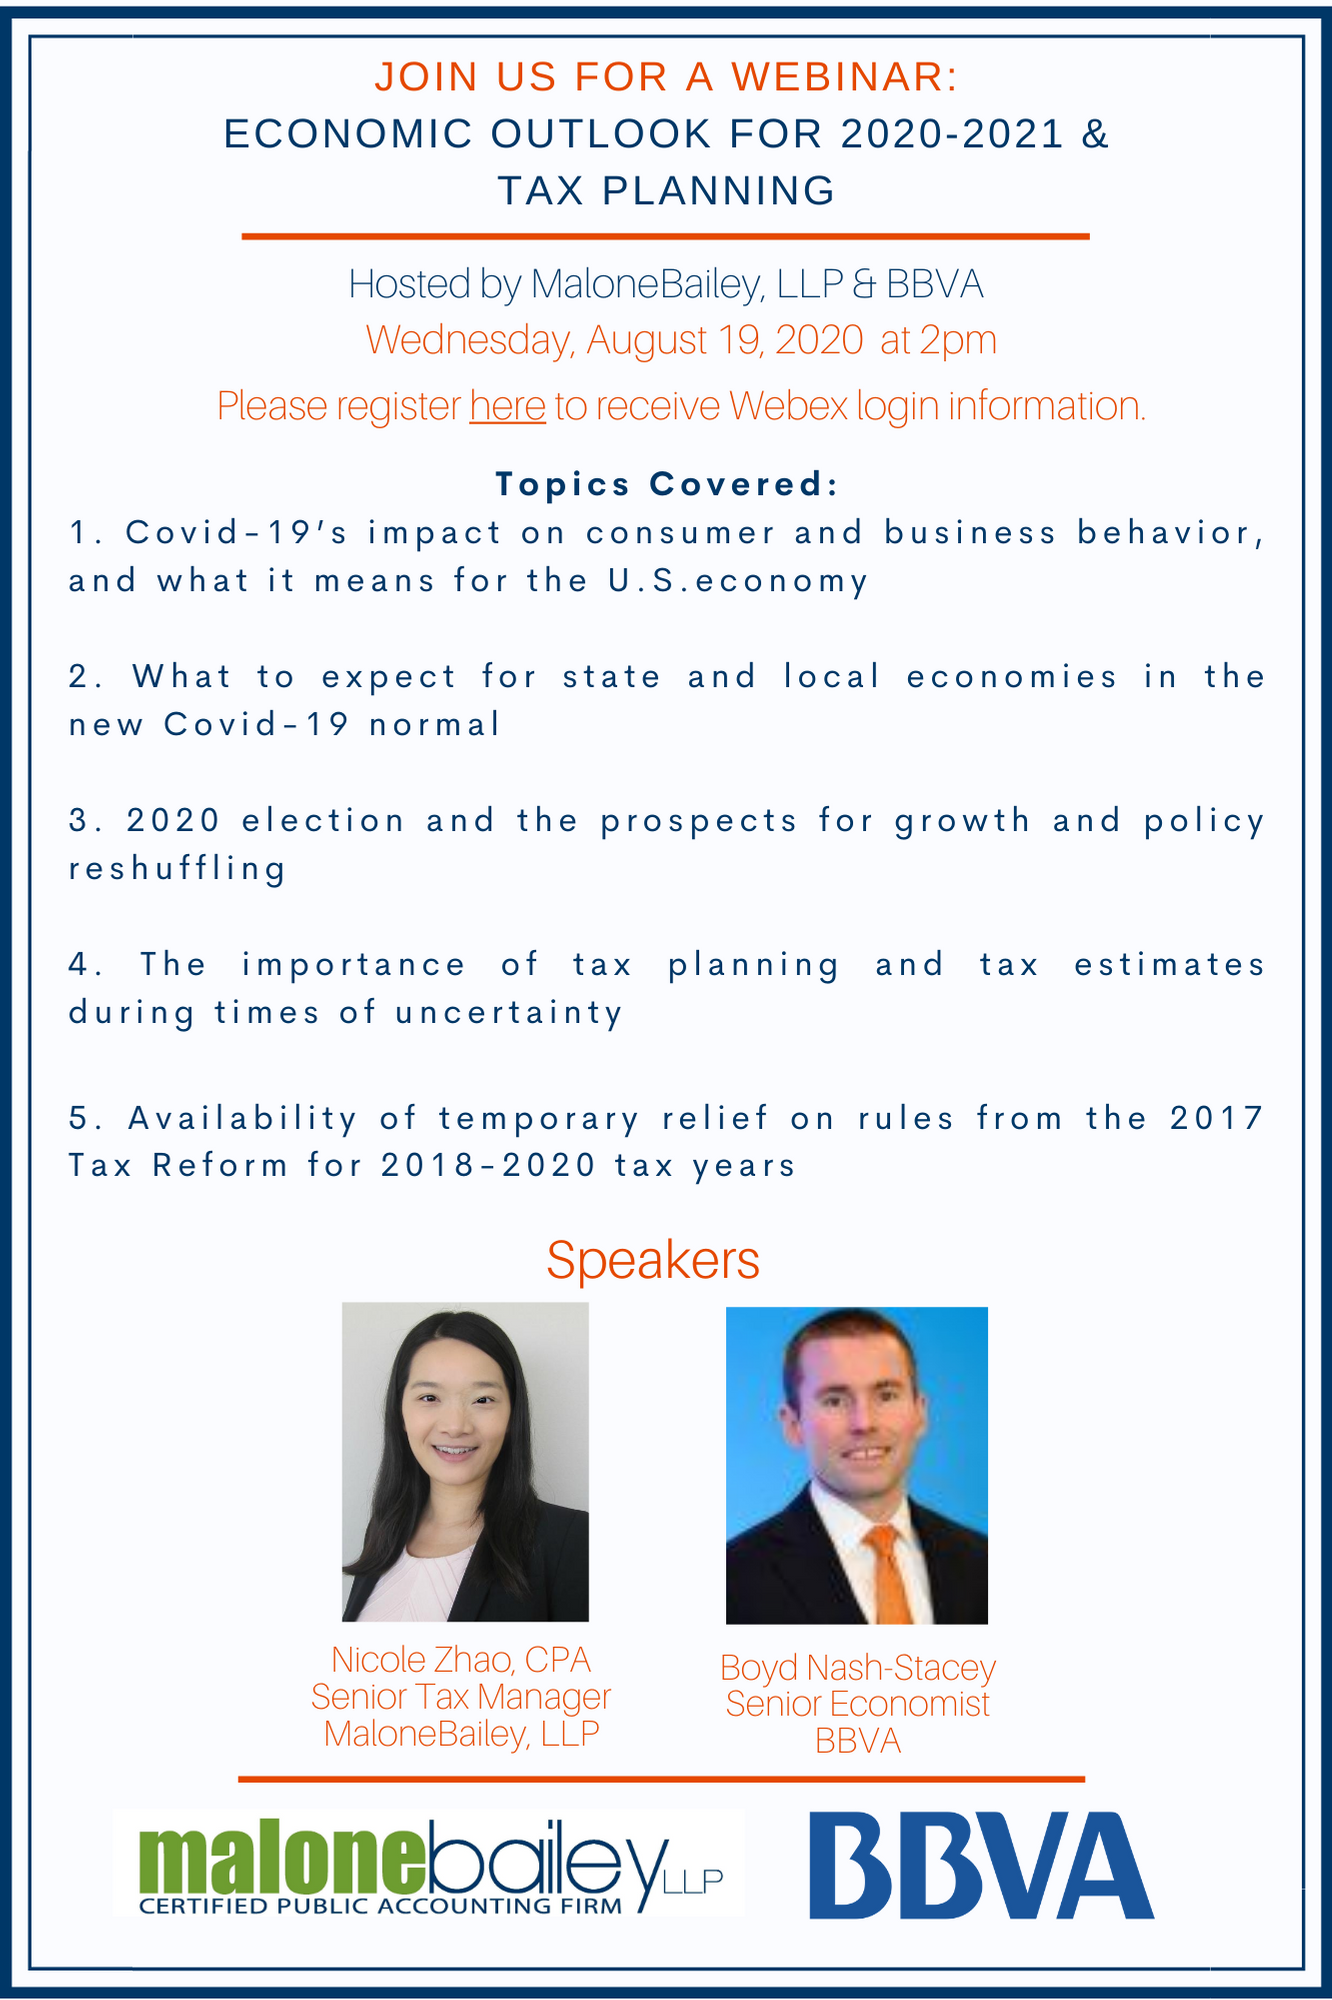 MaloneBailey & BBVA Webinar: Economic Outlook and Tax Planning